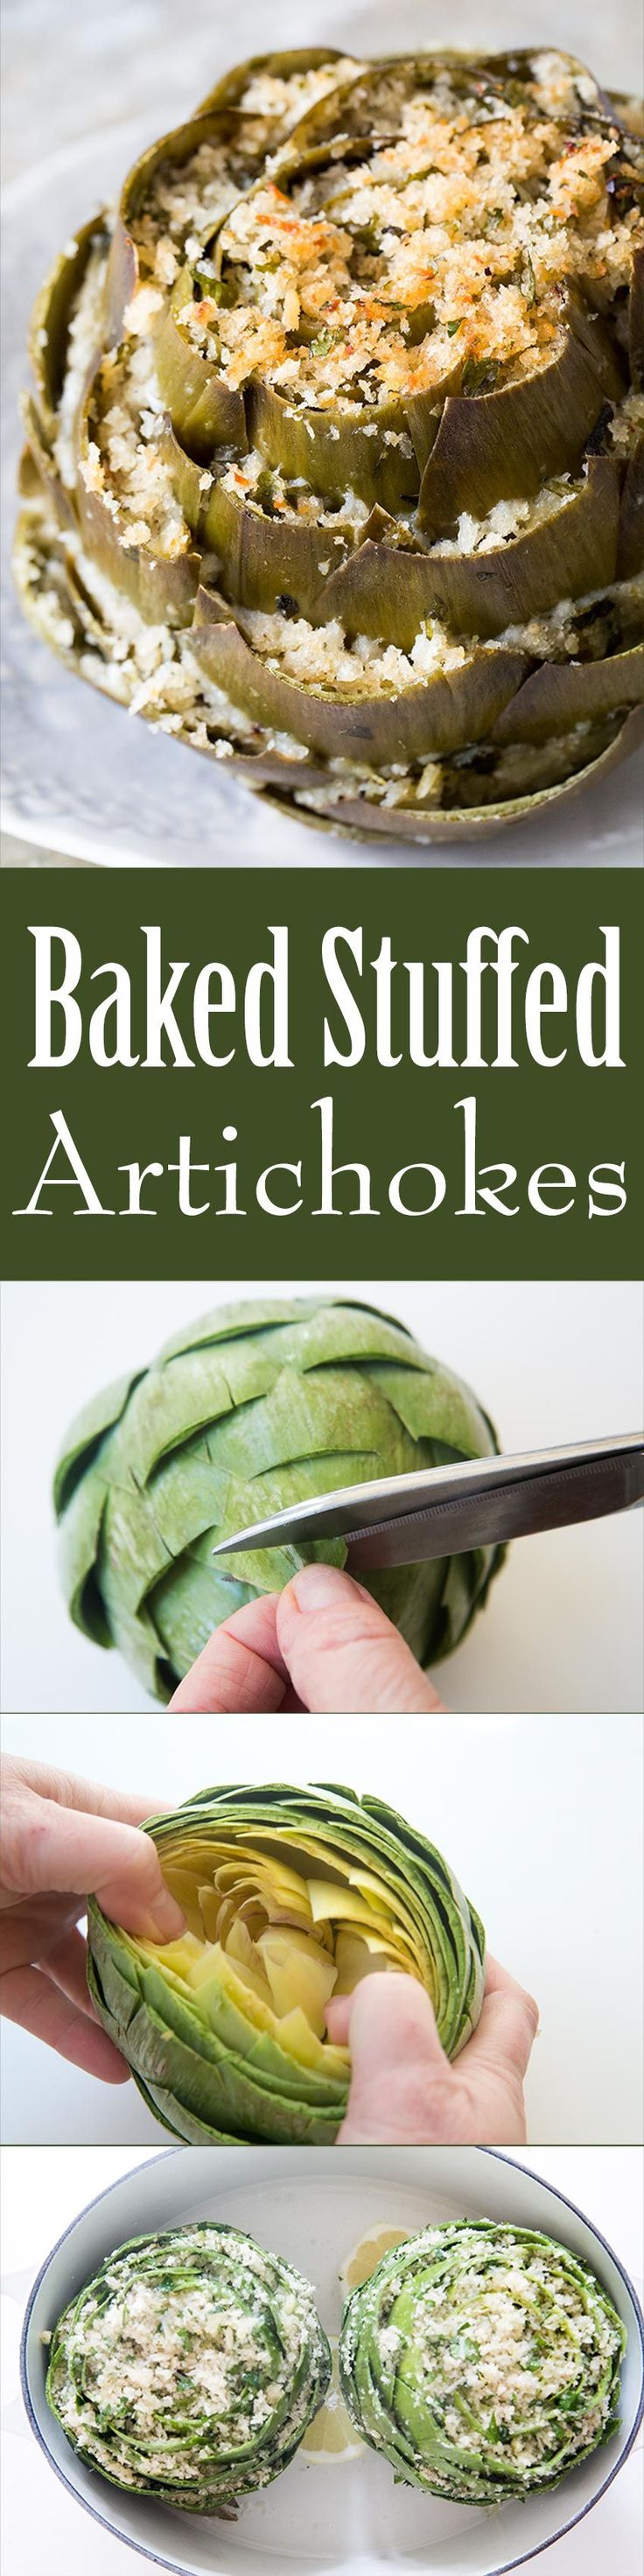 Stuffed artichokes are a perfect artichoke appetizer! Globe artichokes are trimmed and stuffed with herbed parmesan breadcrumb stuffing, then baked.